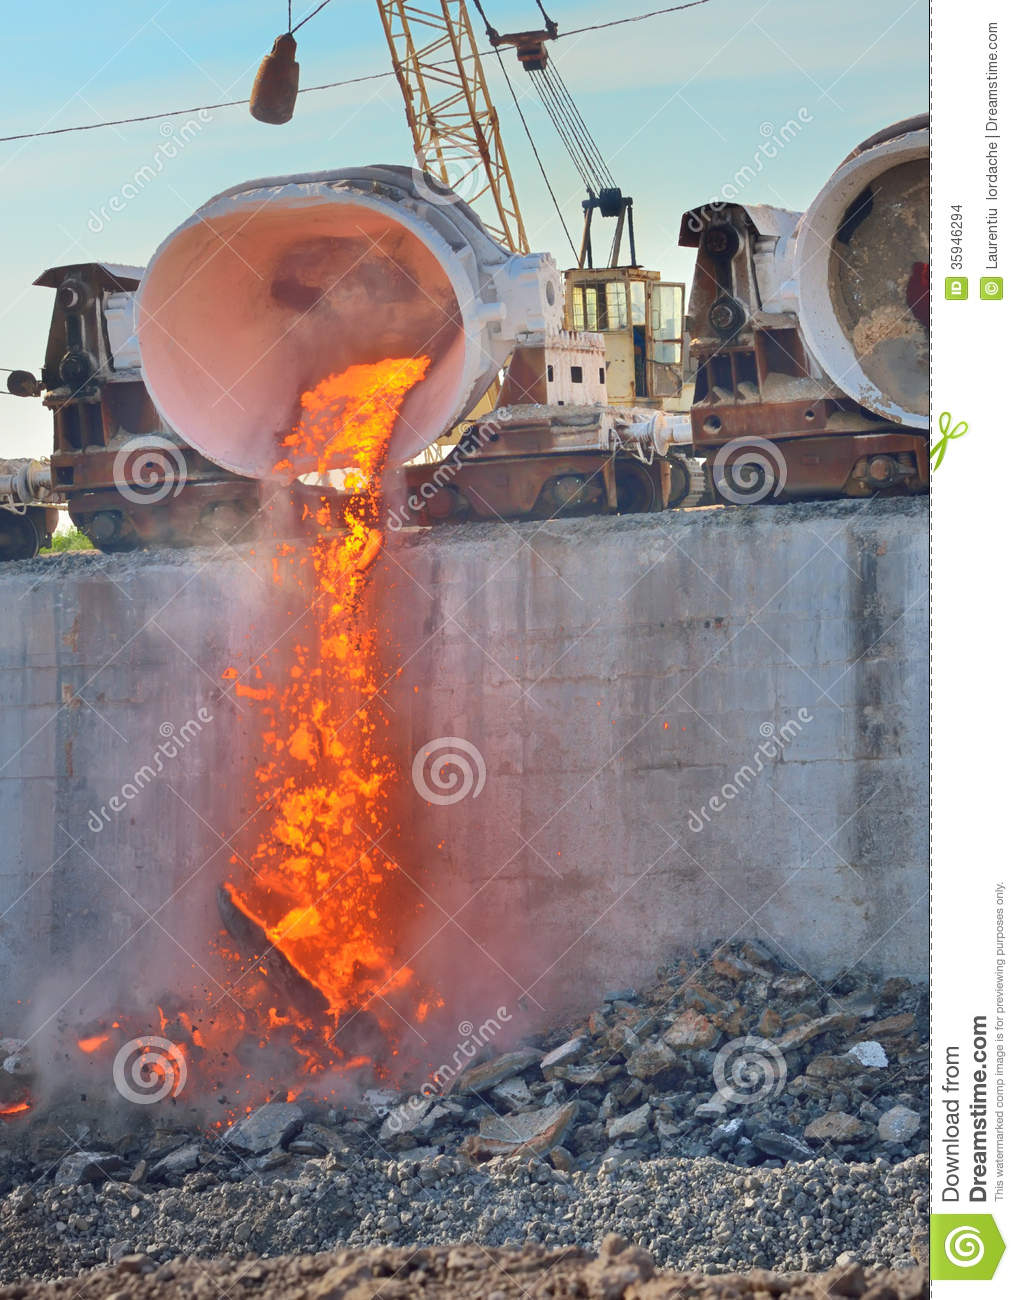 Slag Soil Melted : The molten is poured from a cup on railway platform